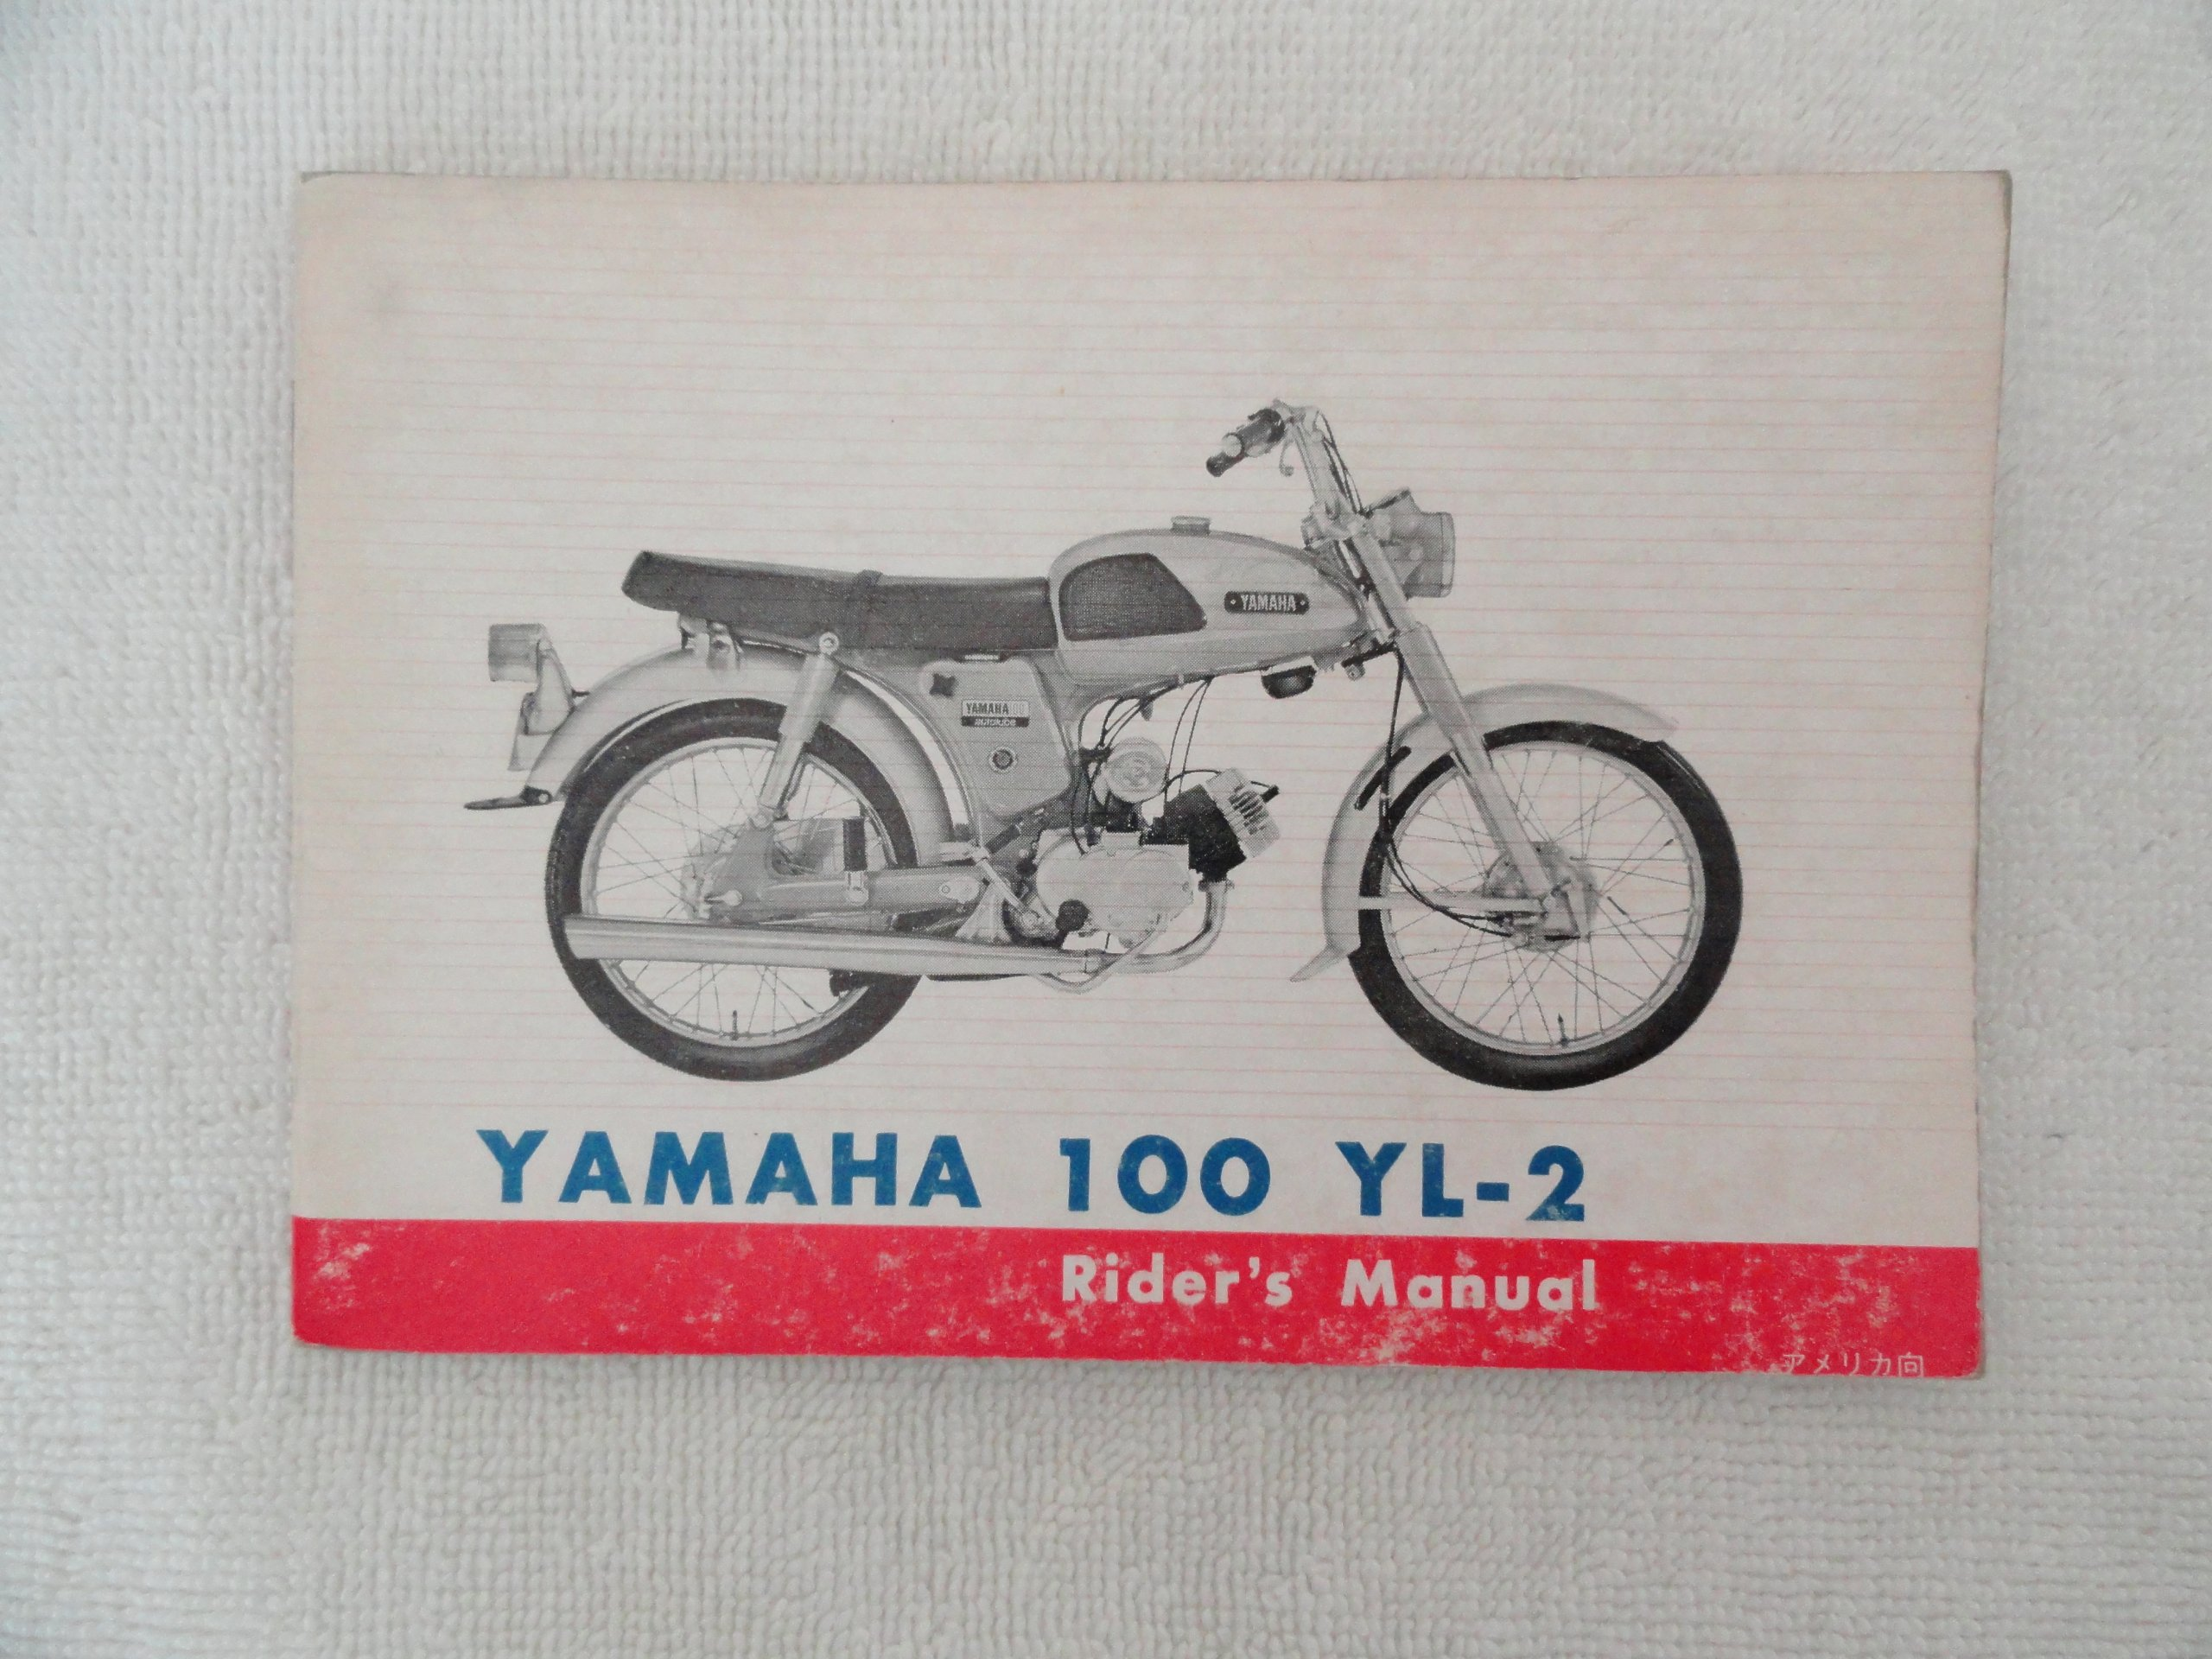 Yamaha 100 YL-2 Owner's Manual YL2: Yamaha: Amazon.com: Books on